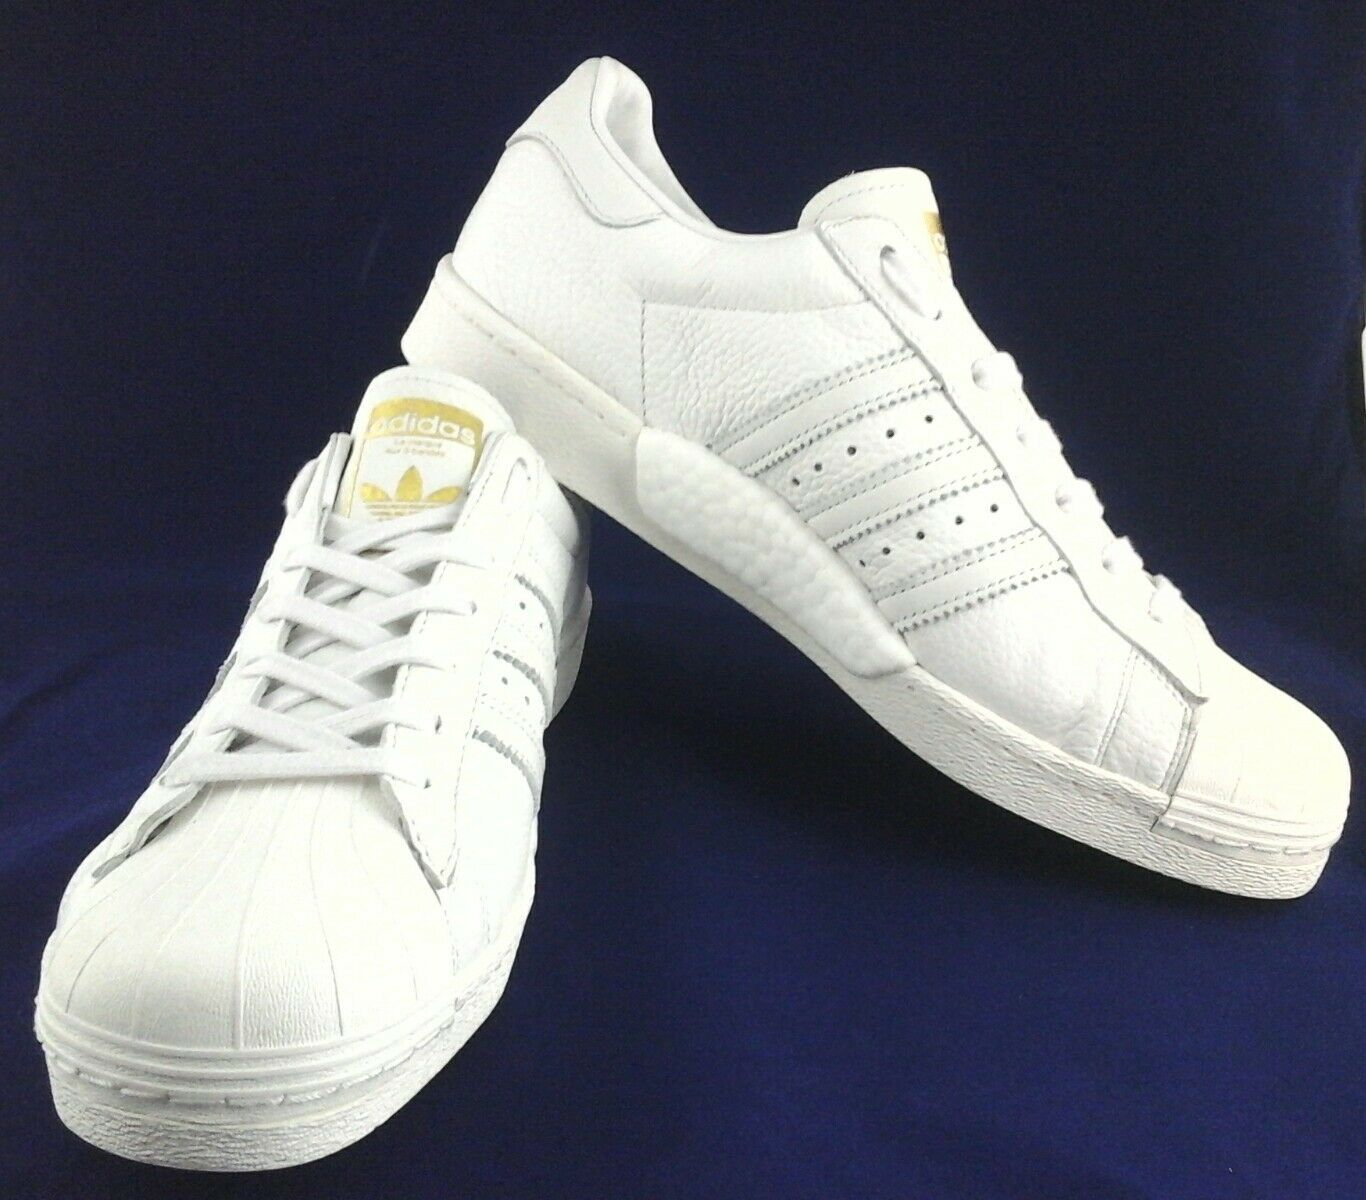 ADIDAS SUPERSTAR BOOST BOOST SUPERSTAR Zapatillas Para hombre Originals Apagado Blanco BB0187 US 11.5 * f51726